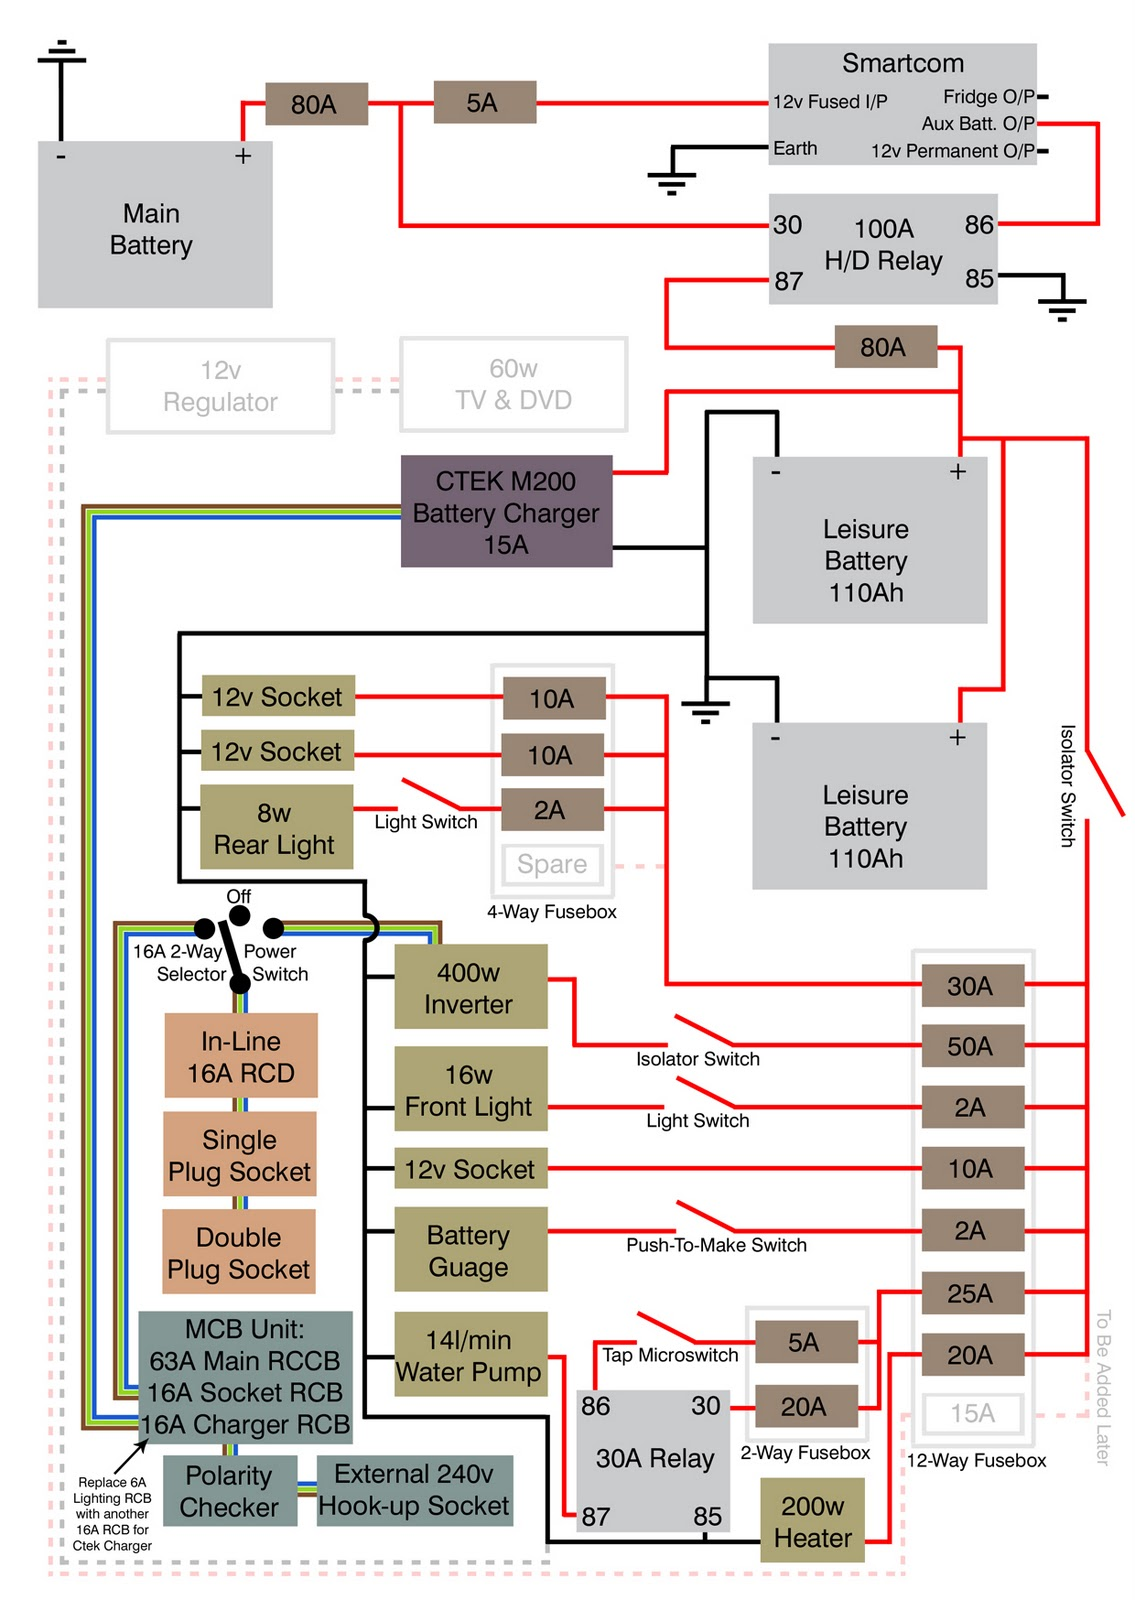 Smartcom Split Charge Wiring Diagram Basic Electrical Wiring ...